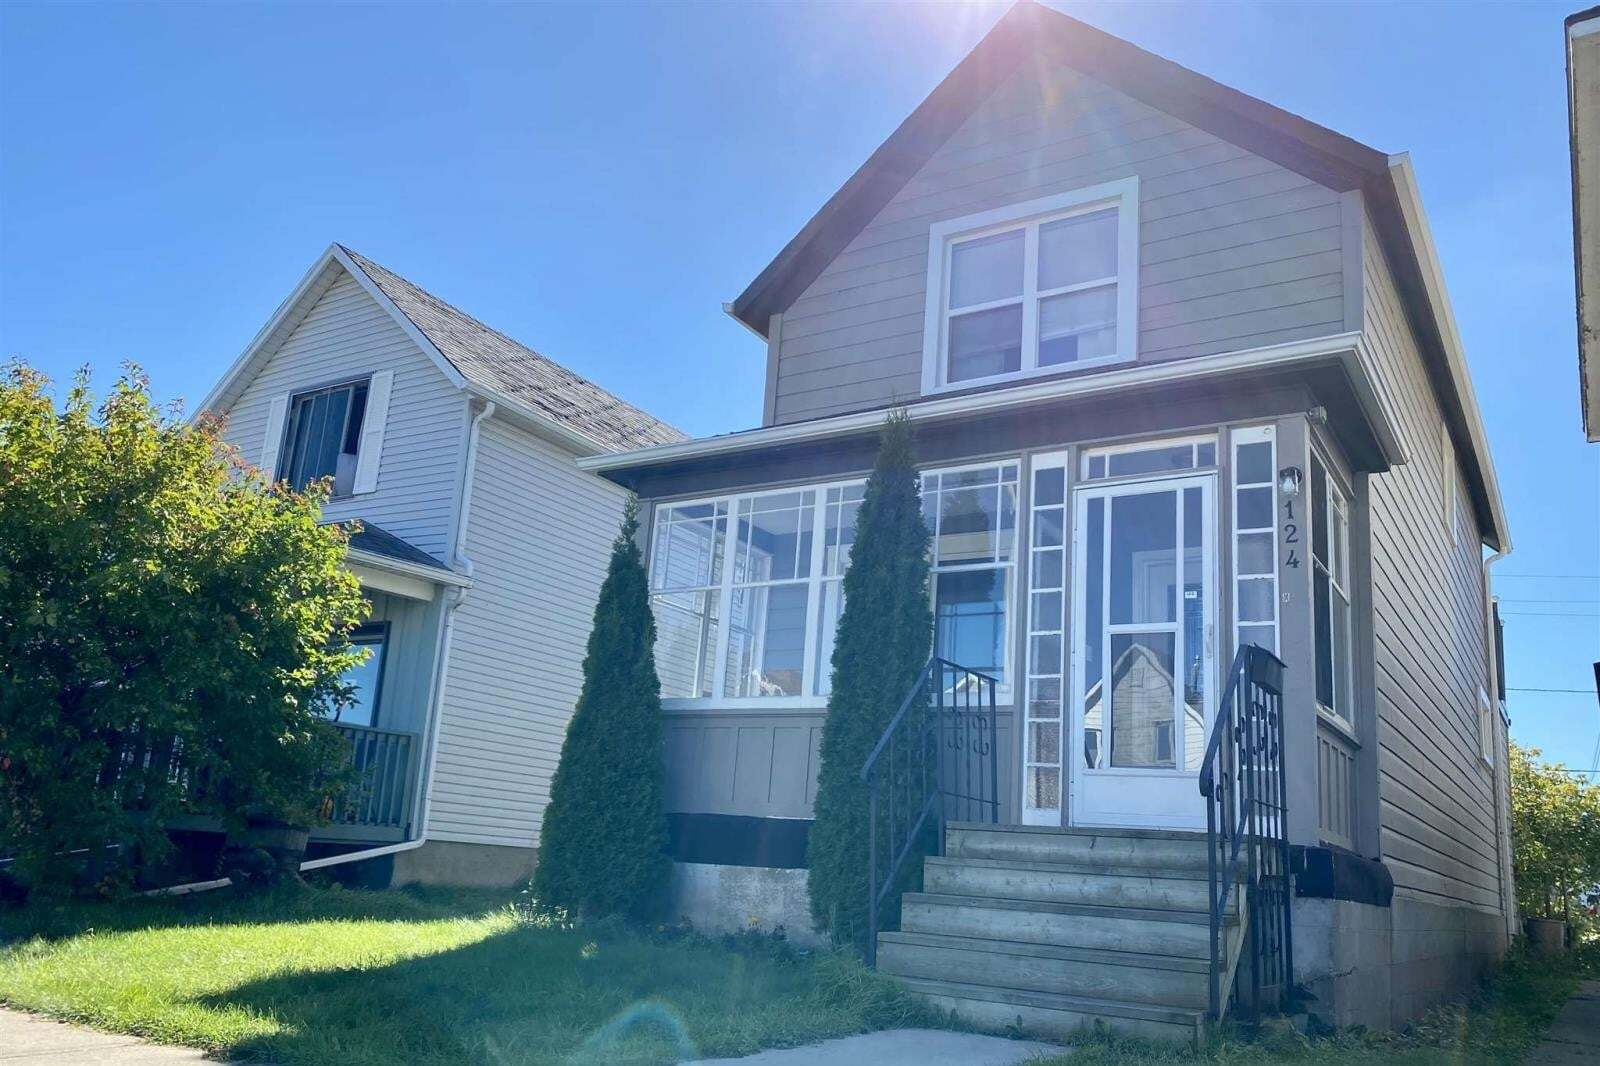 House for sale at 124 Amelia St W Thunder Bay Ontario - MLS: TB202323